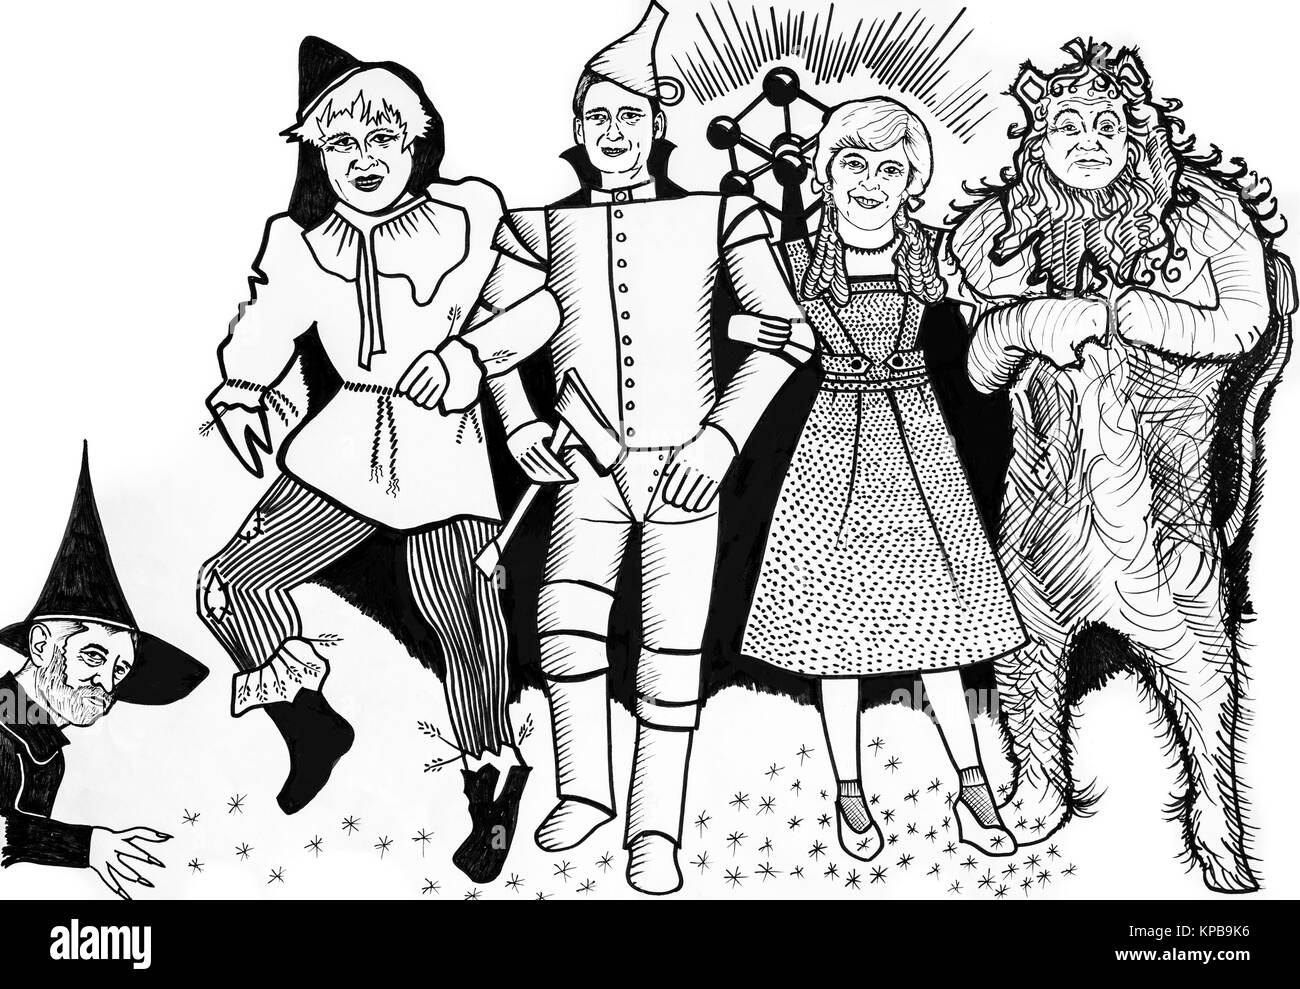 Satirical cartoon of Theresa May and political leaders dressed as characters in The Wizard Of Oz during Brexit negotiations - Stock Image